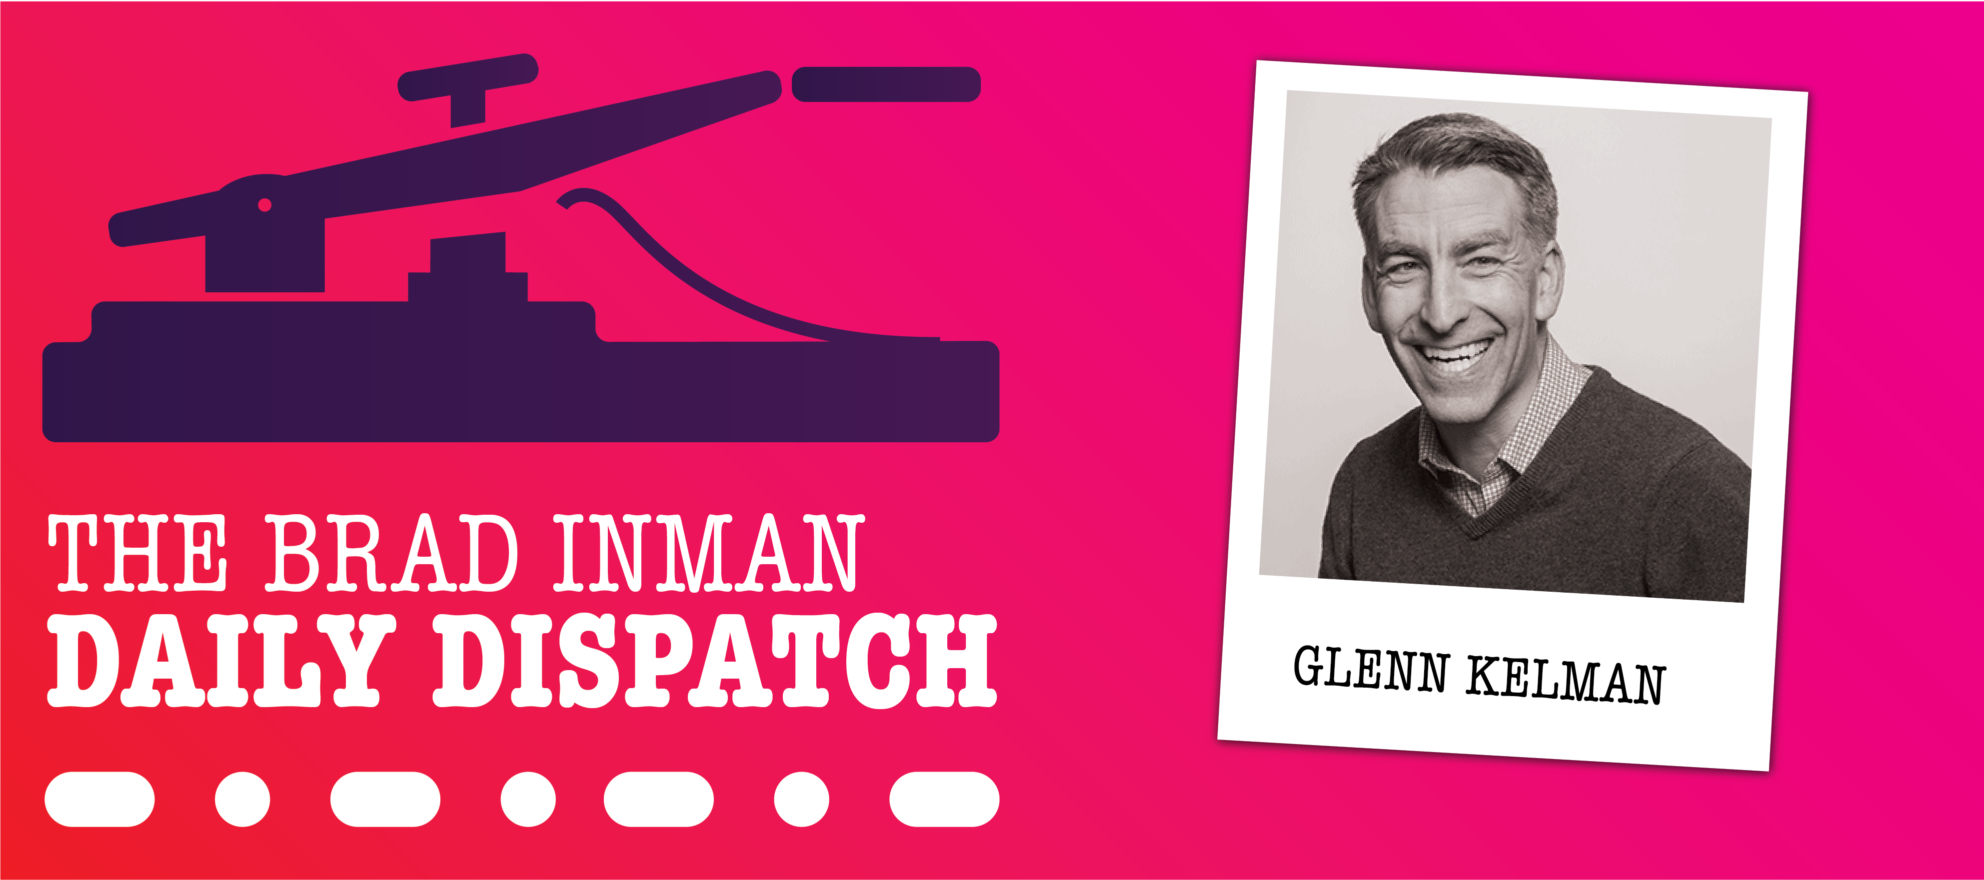 Daily Dispatch: Brad Inman with Glenn Kelman